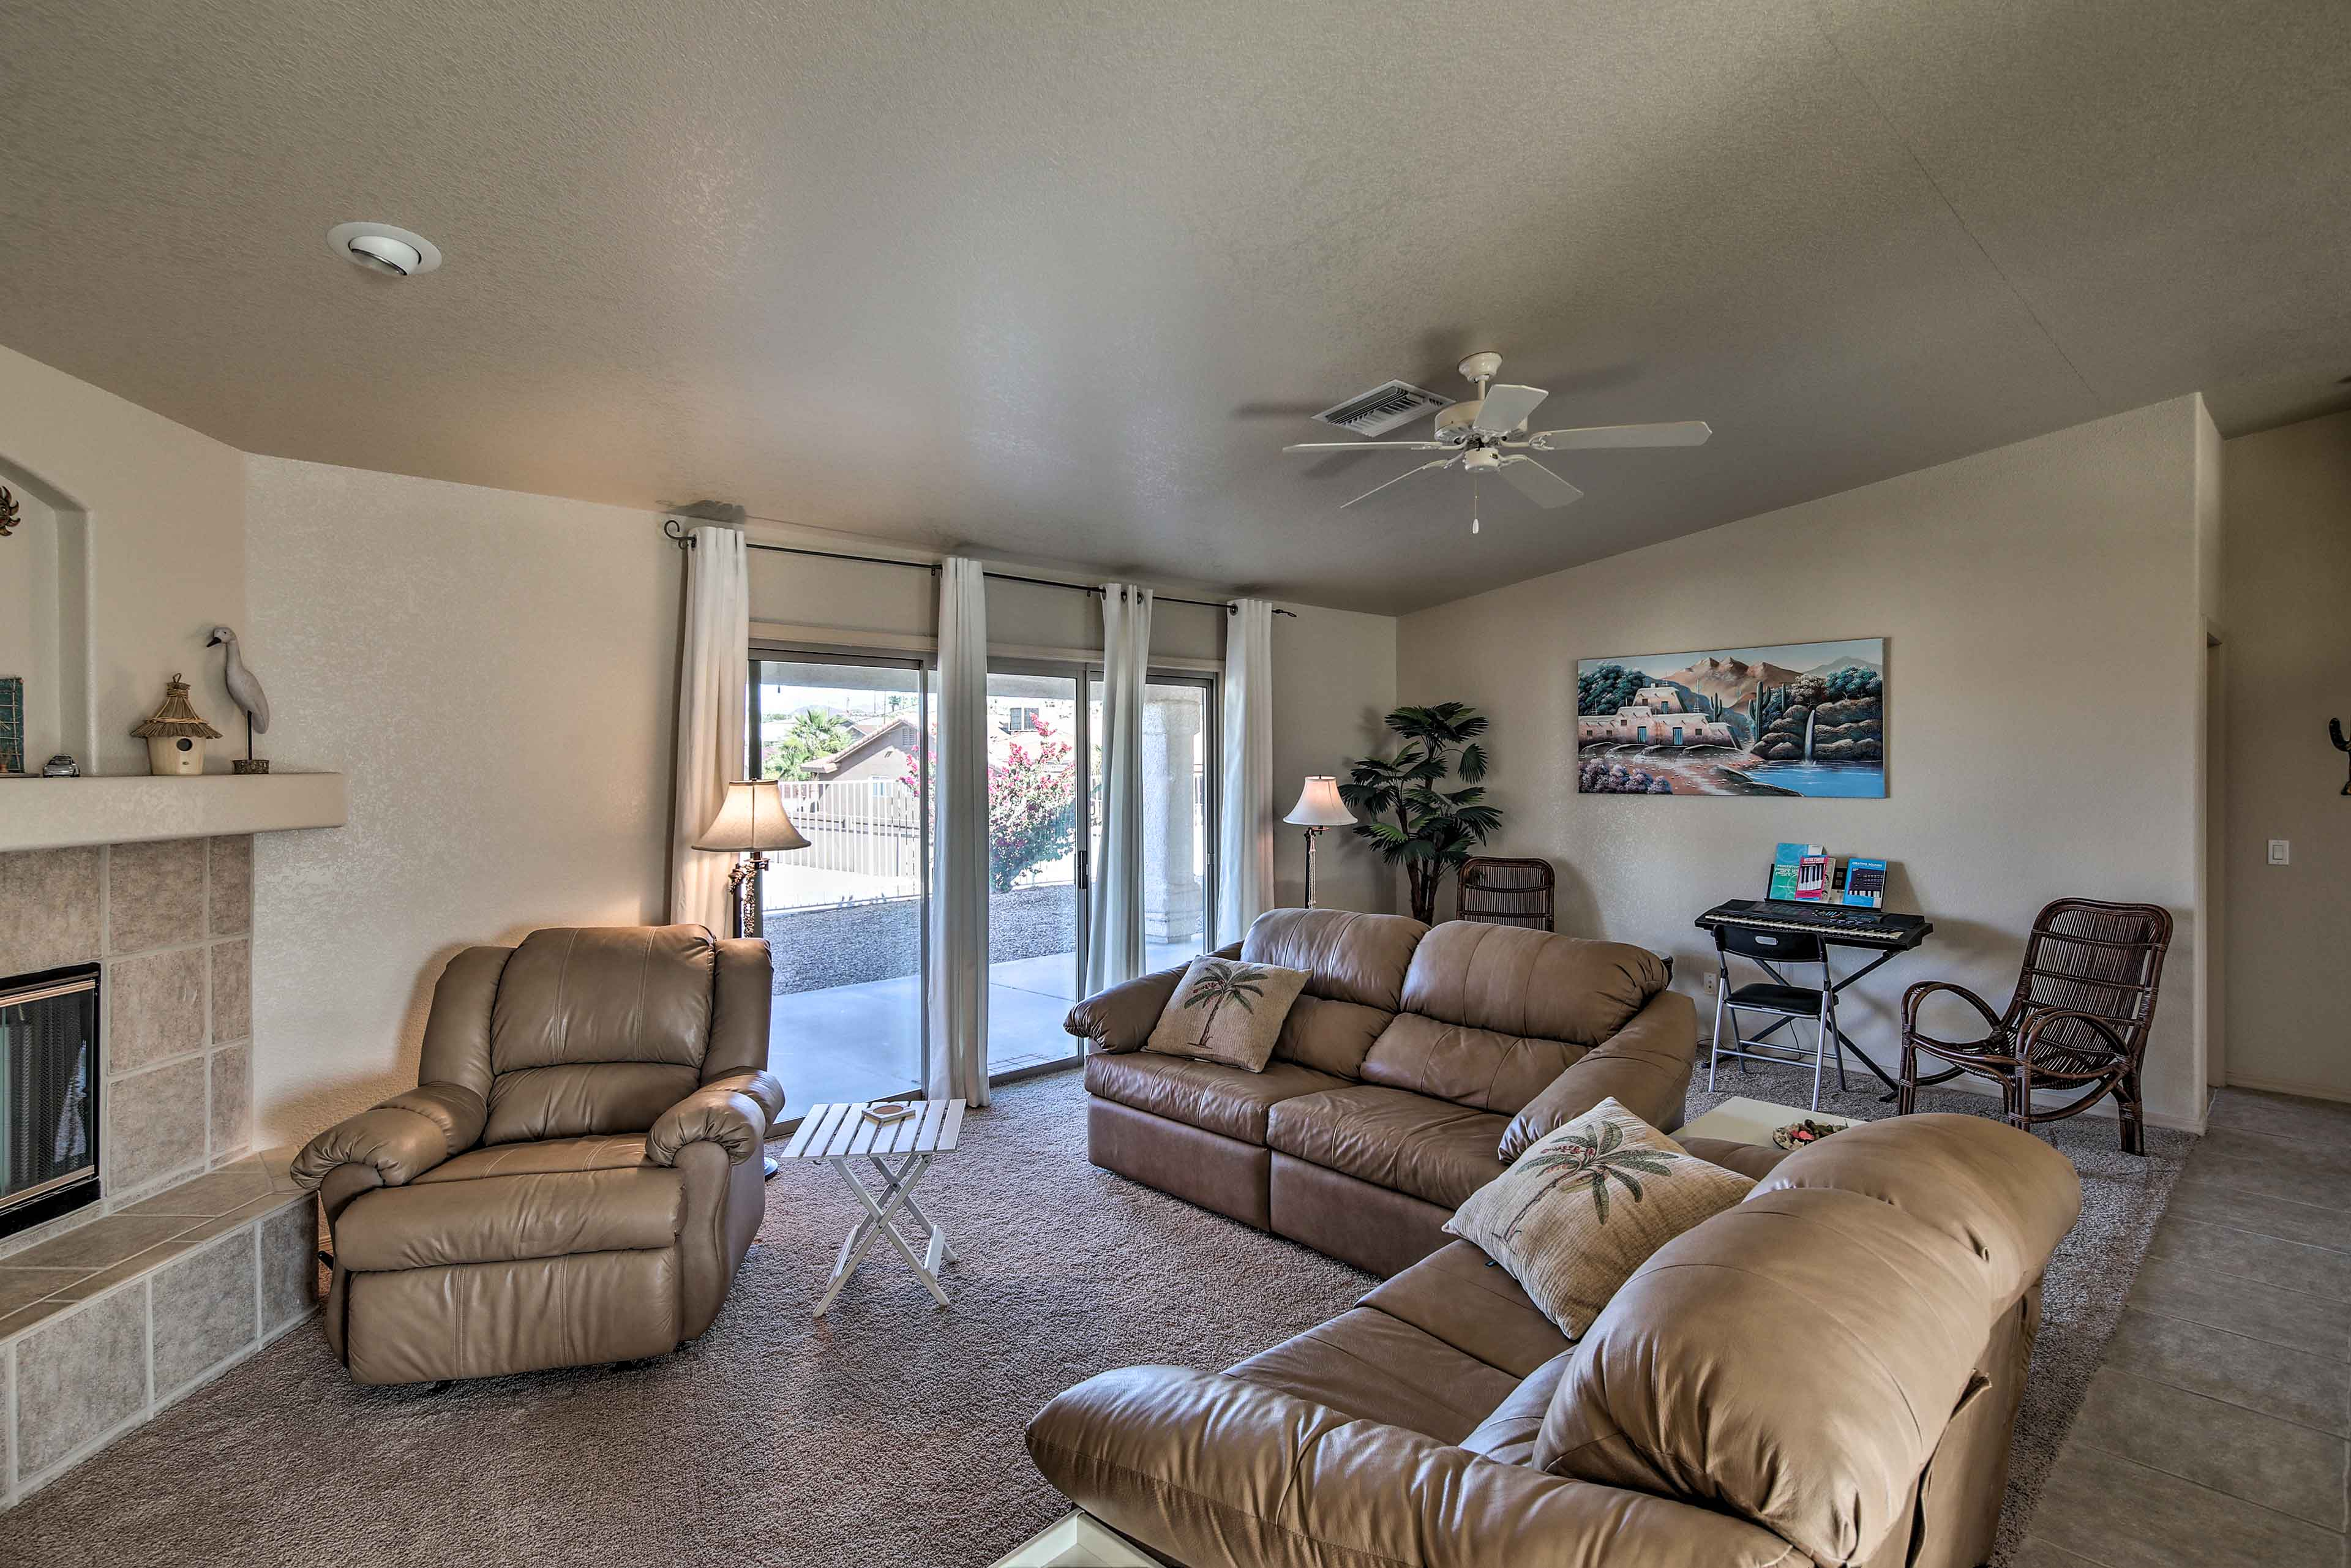 The family room features 2 sleeper sofas for 2 guests.